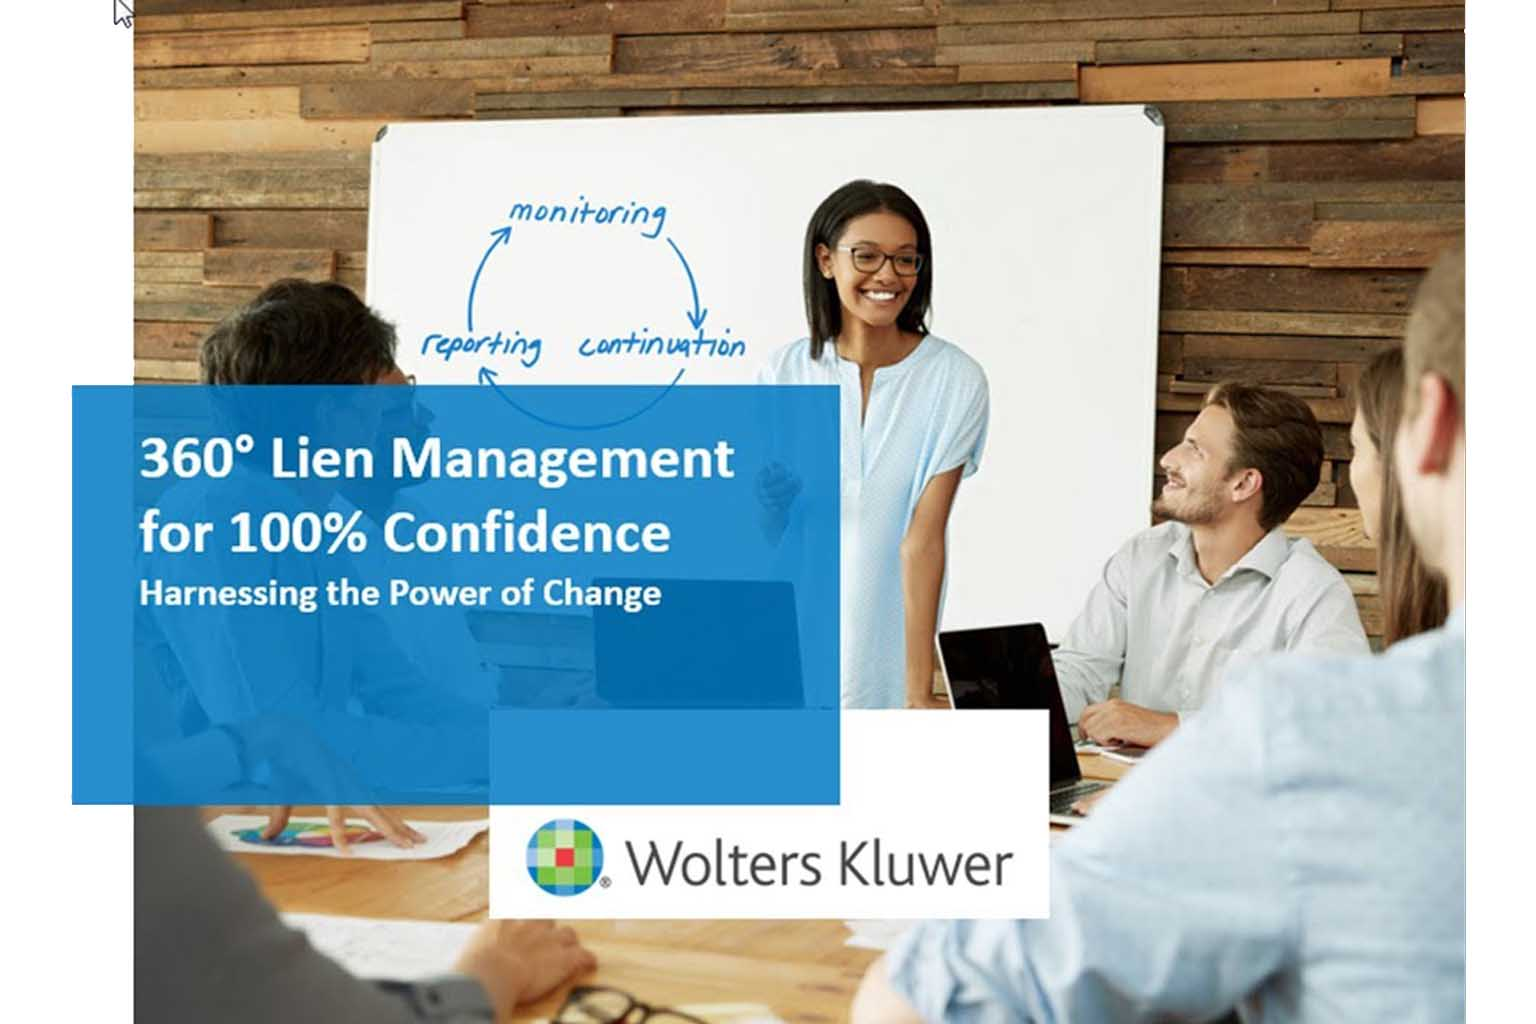 Lien Management for 100% Confidence webinar title card